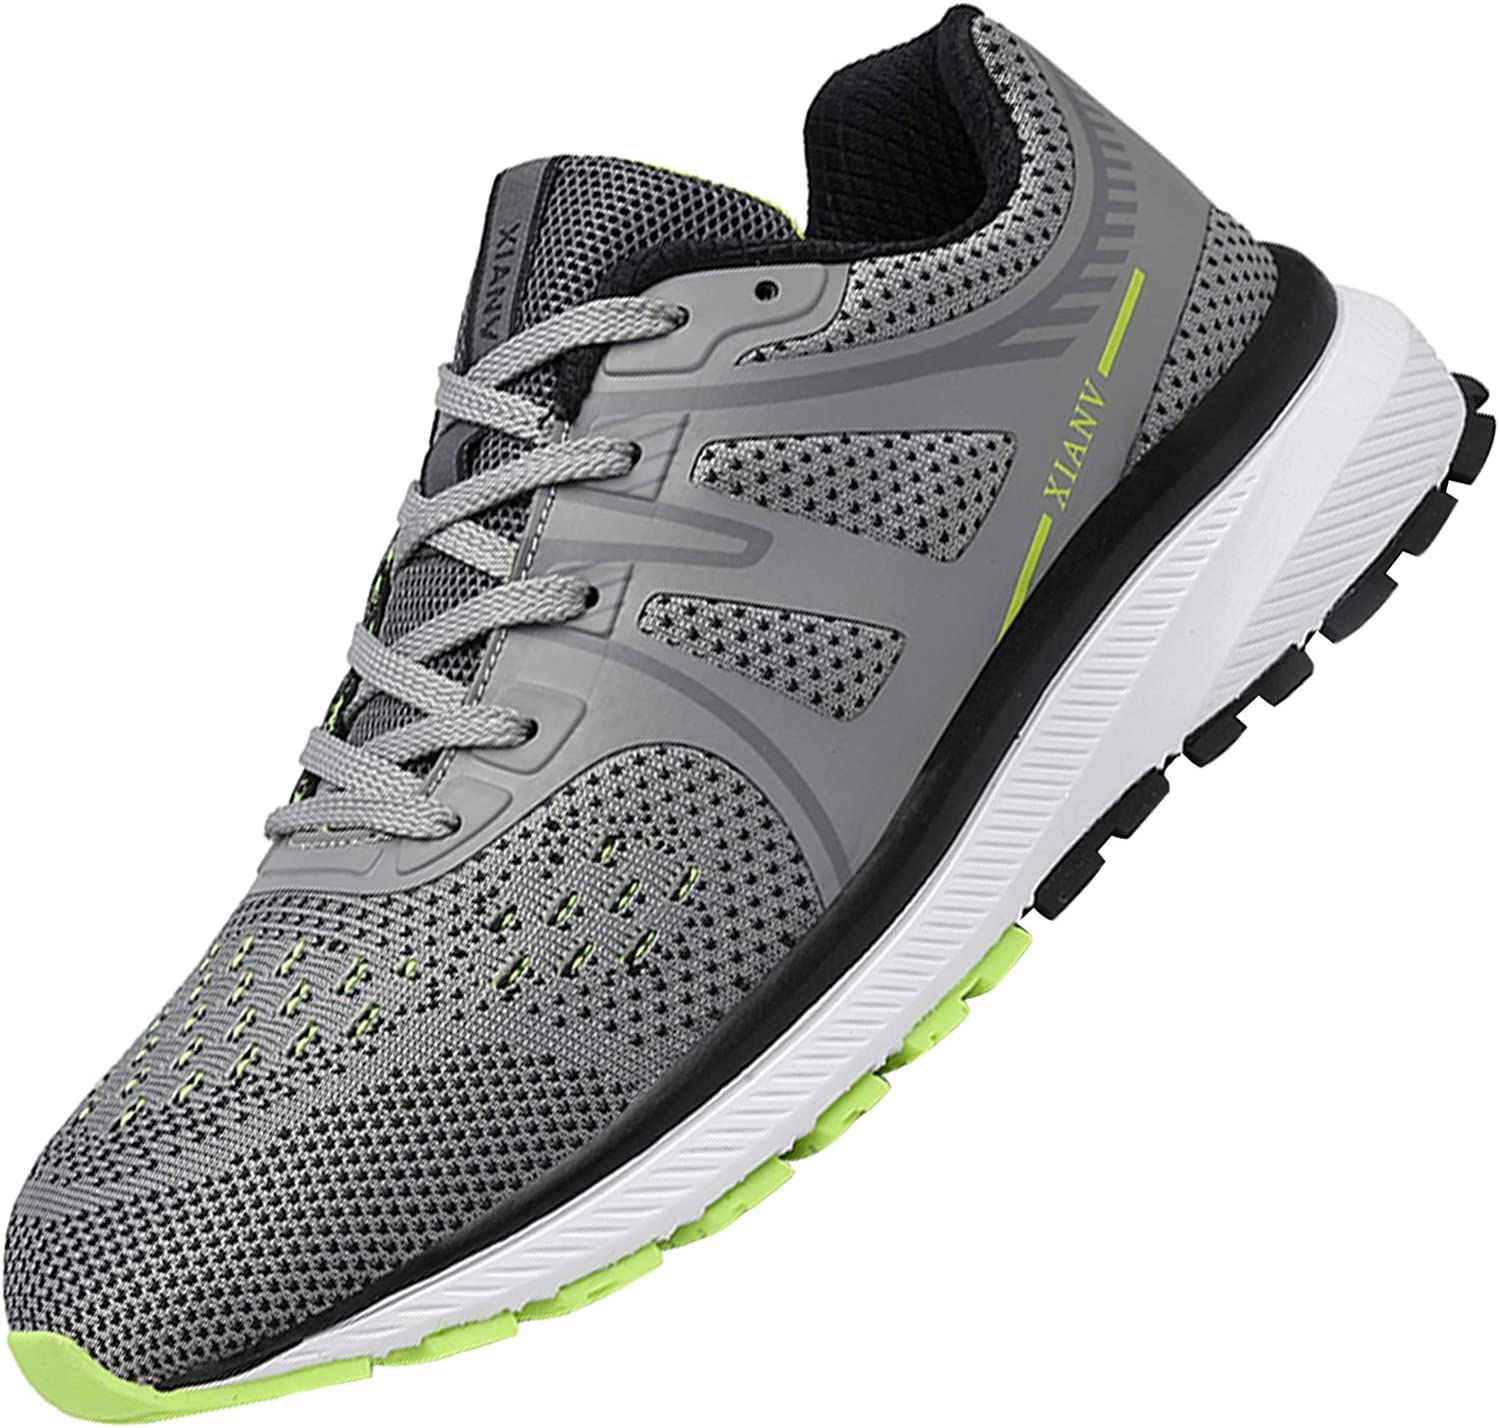 DUORO Walking Shoes for Men Sacramento Mall Breathable Max 43% OFF Running Shoe Lightweight